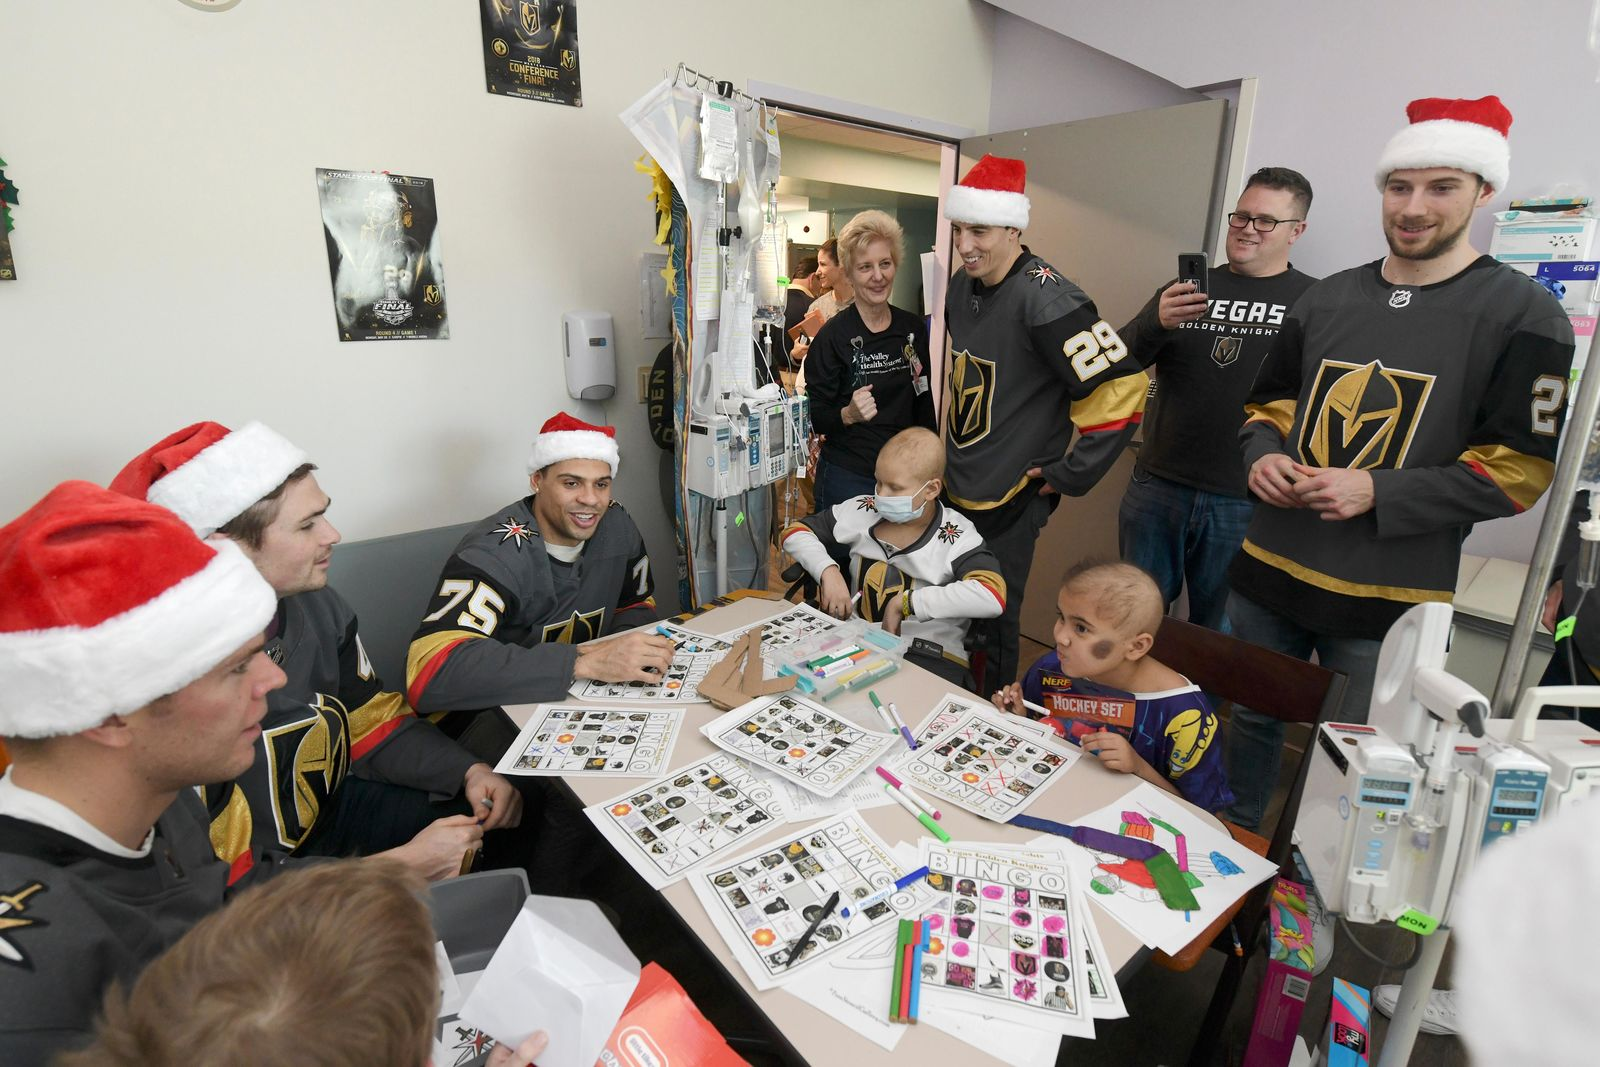 Vegas Golden Knights players visit young patients and play bingo during a visit to Summerlin Hospital Friday, December 21, 2018. CREDIT: Sam Morris/Las Vegas News Bureau